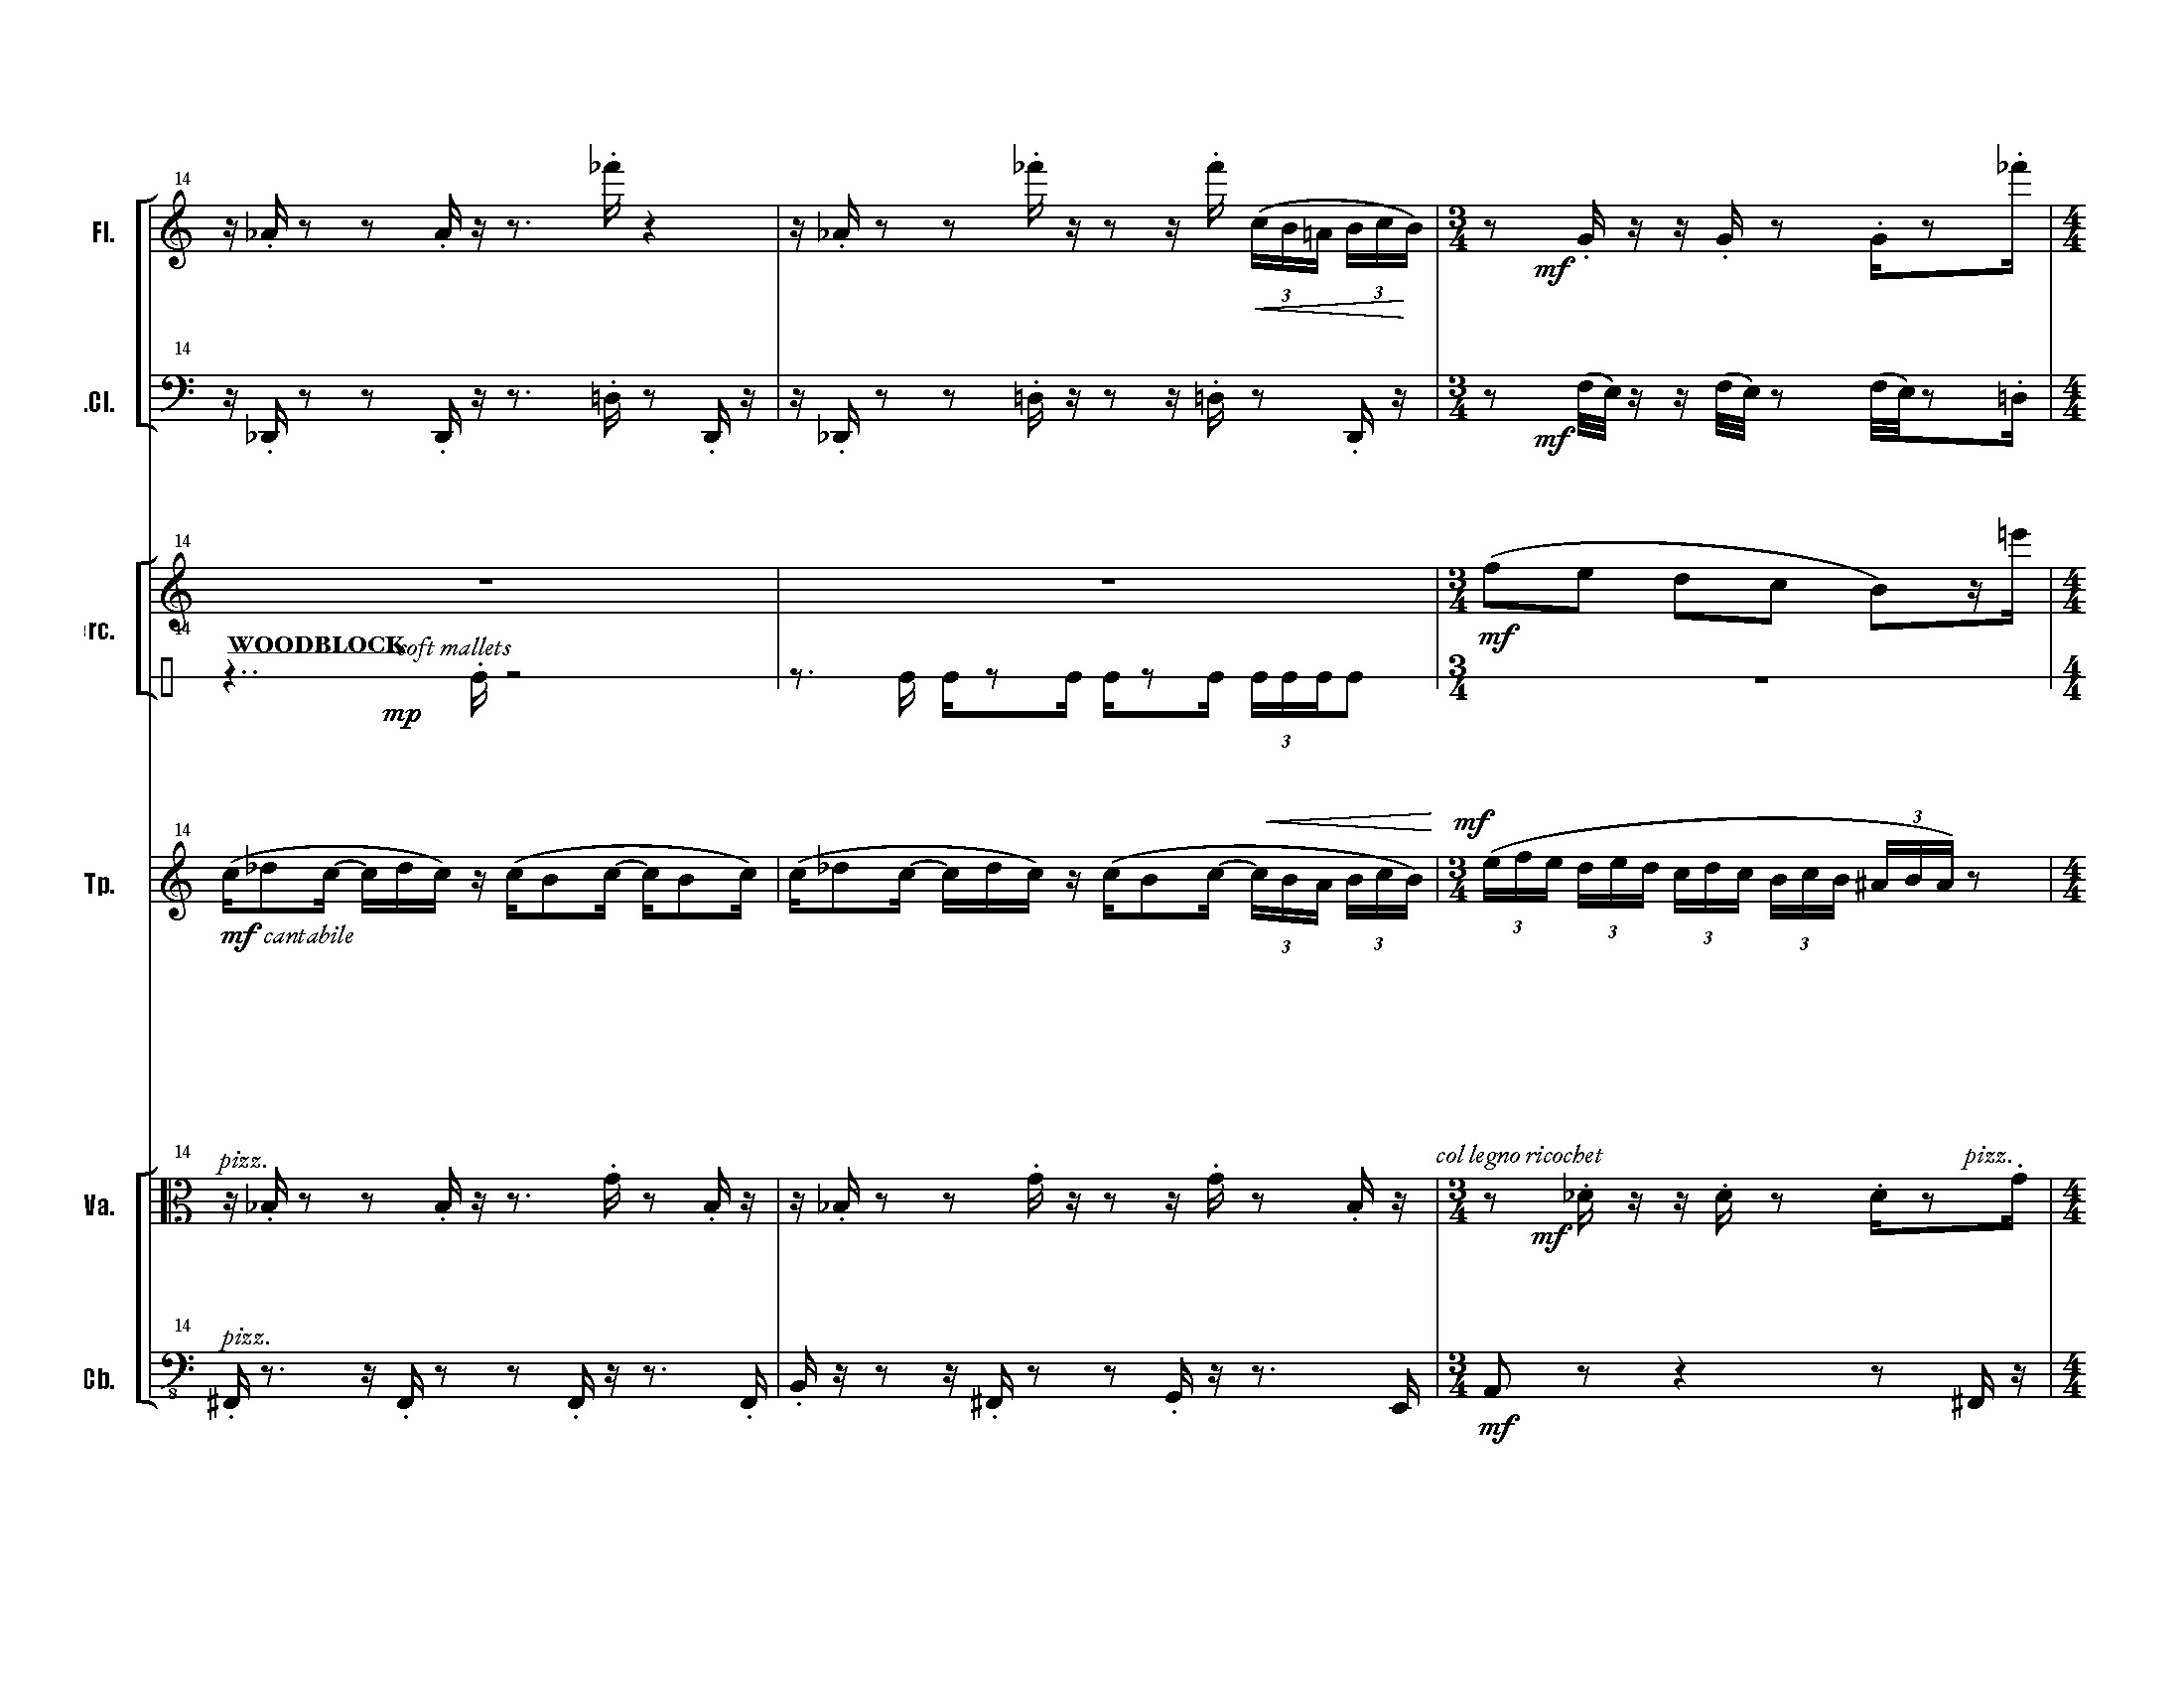 167 - Composition 167_Page_09.jpg